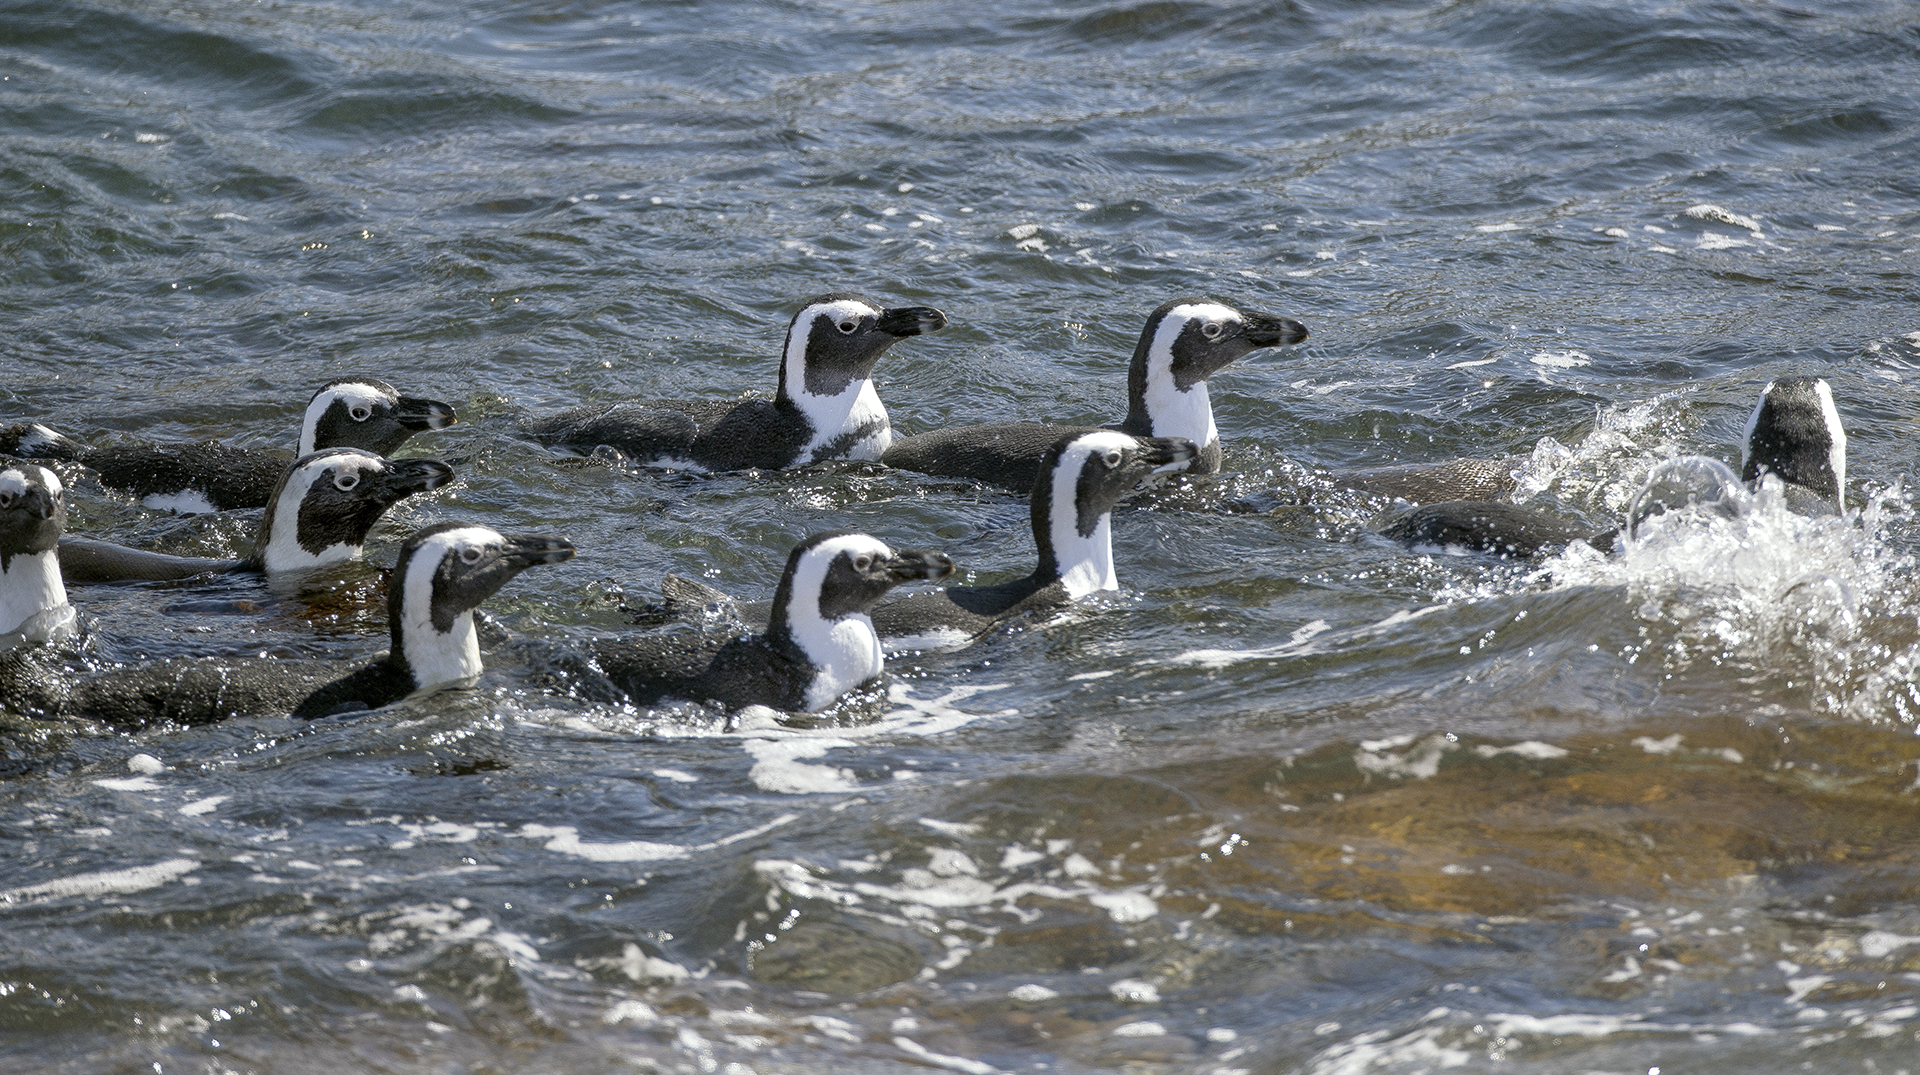 A large group of African Penguins swimming in the ocean in a group